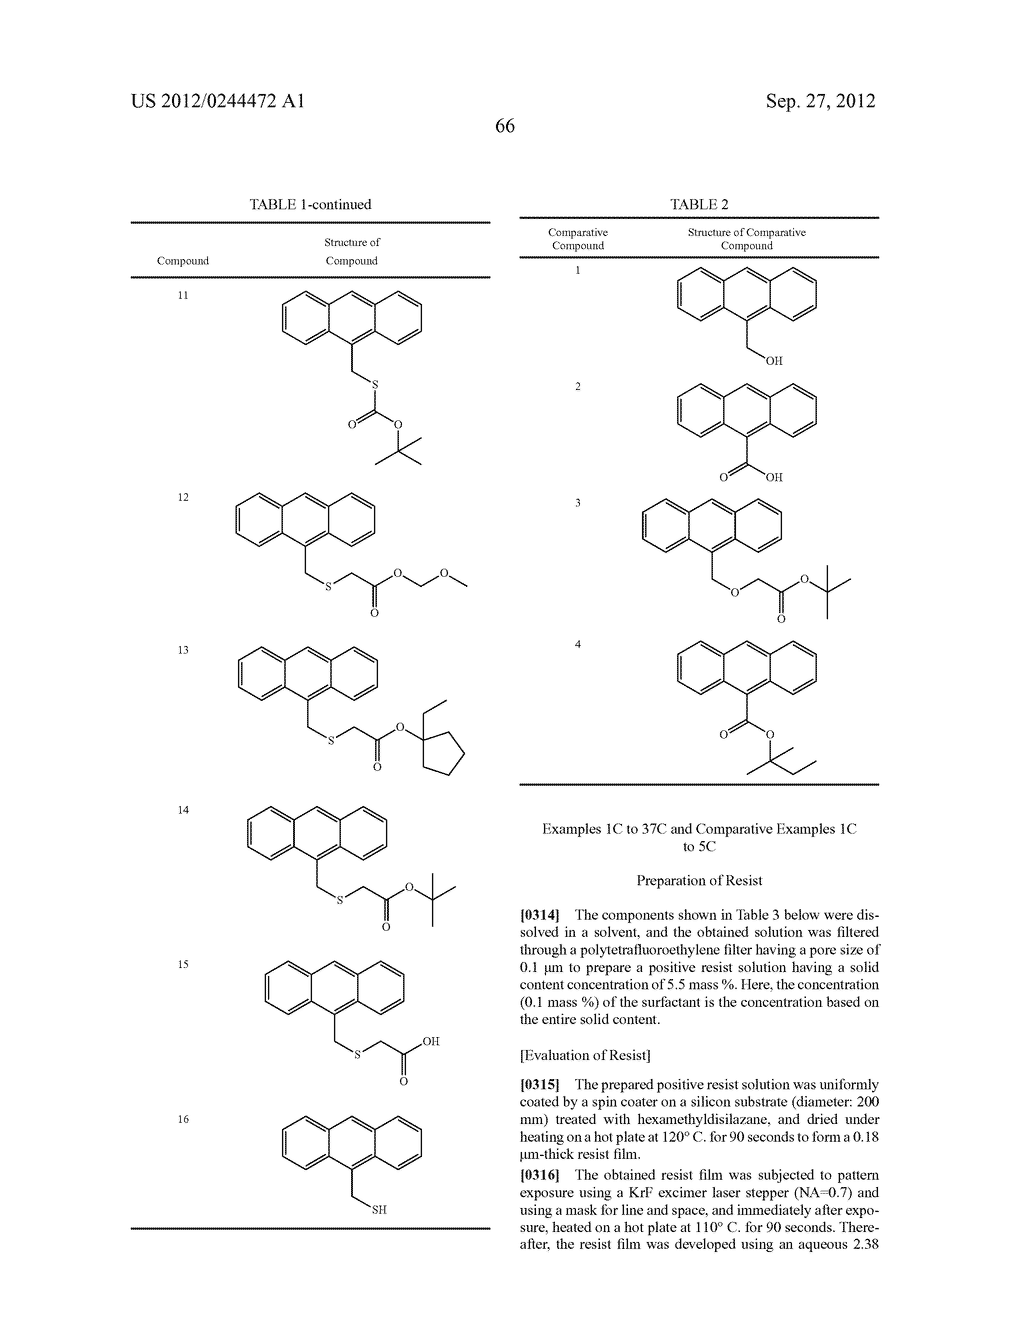 ACTINIC RAY-SENSITIVE OR RADIATION-SENSITIVE RESIN COMPOSITION, FILM     FORMED USING THE COMPOSITION AND PATTERN FORMING METHOD USING THE SAME - diagram, schematic, and image 67